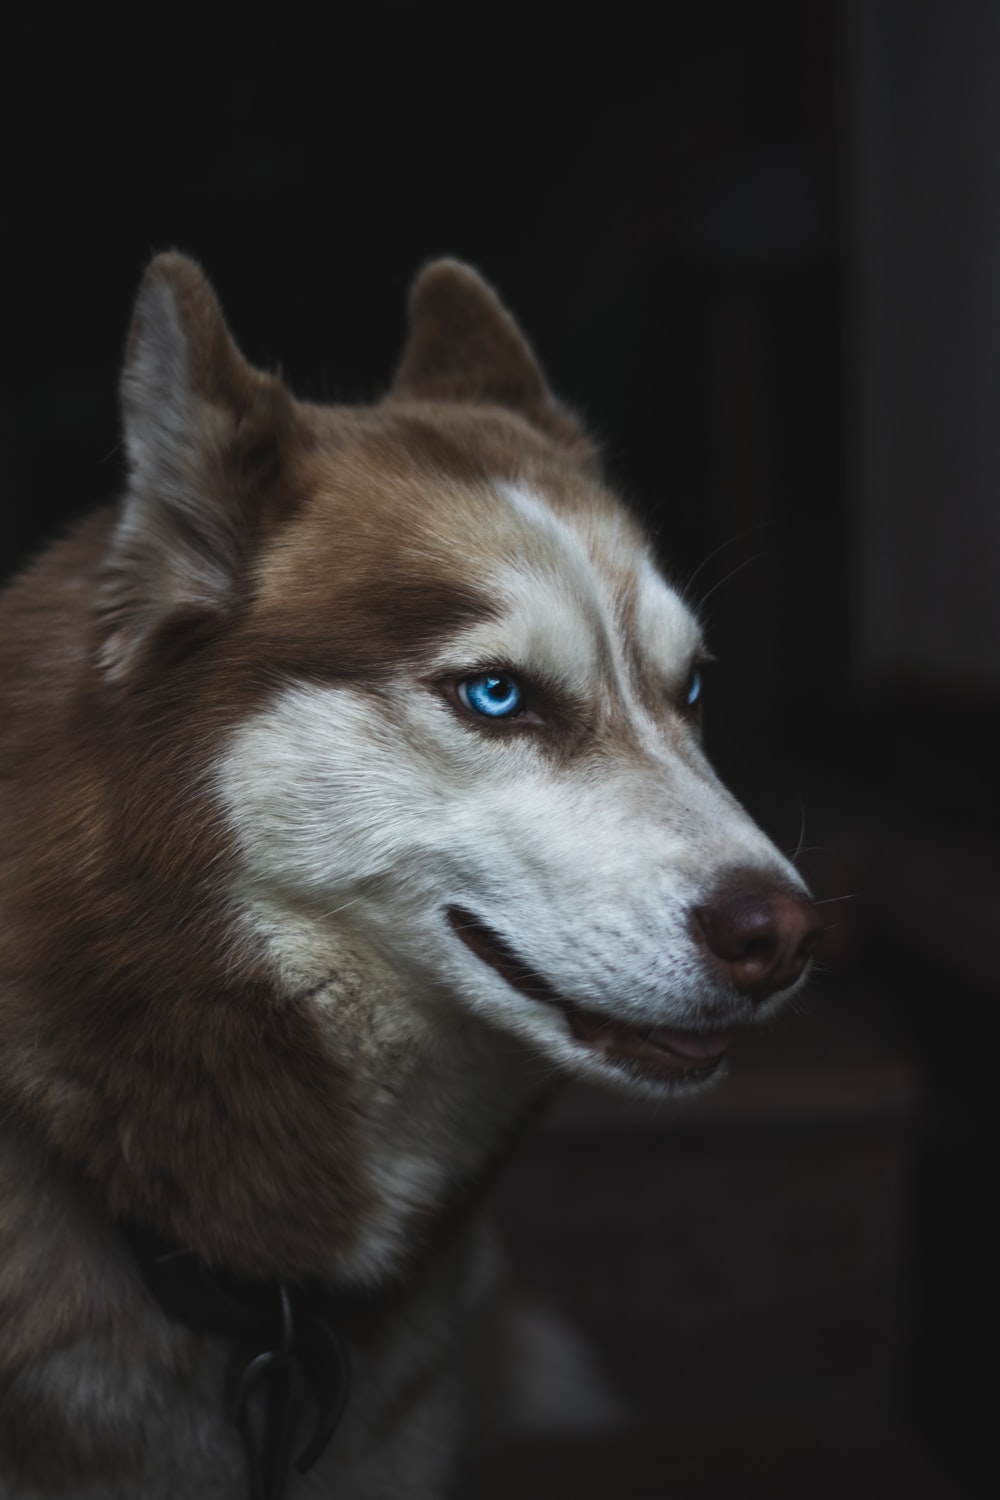 brown and white Siberian husky close-up photo